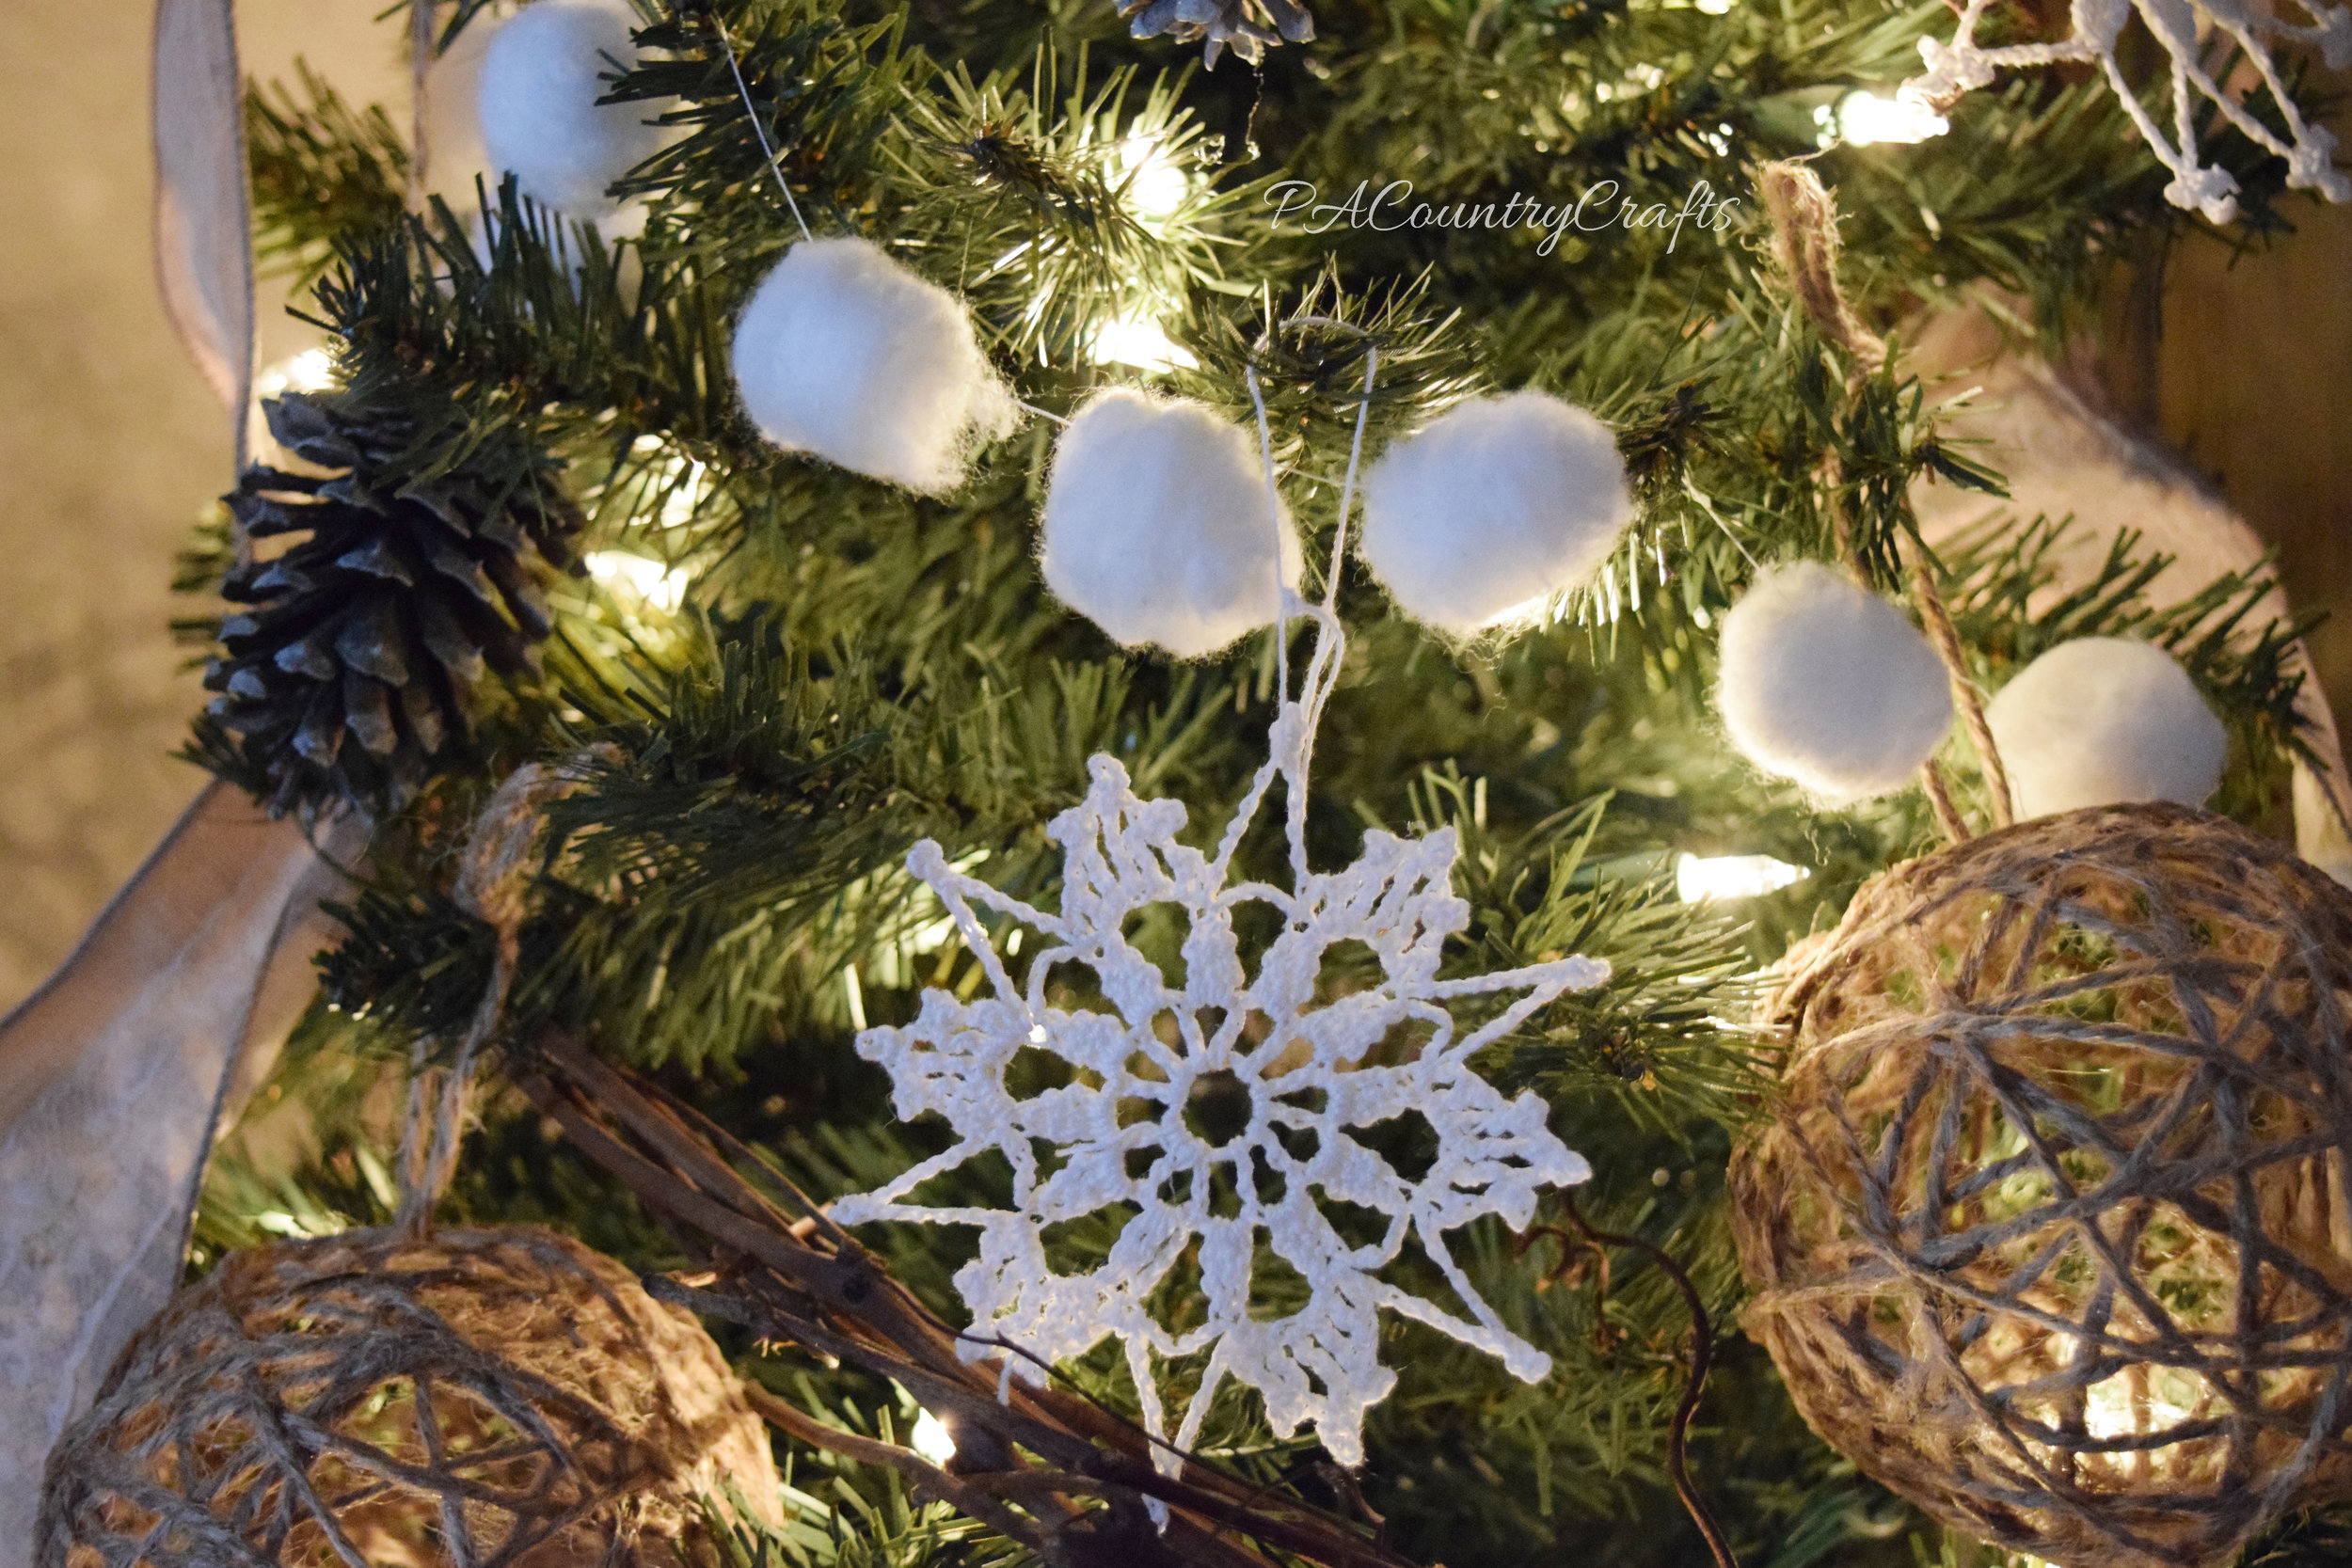 Crochet snowflakes and snowball garland made from cotton balls